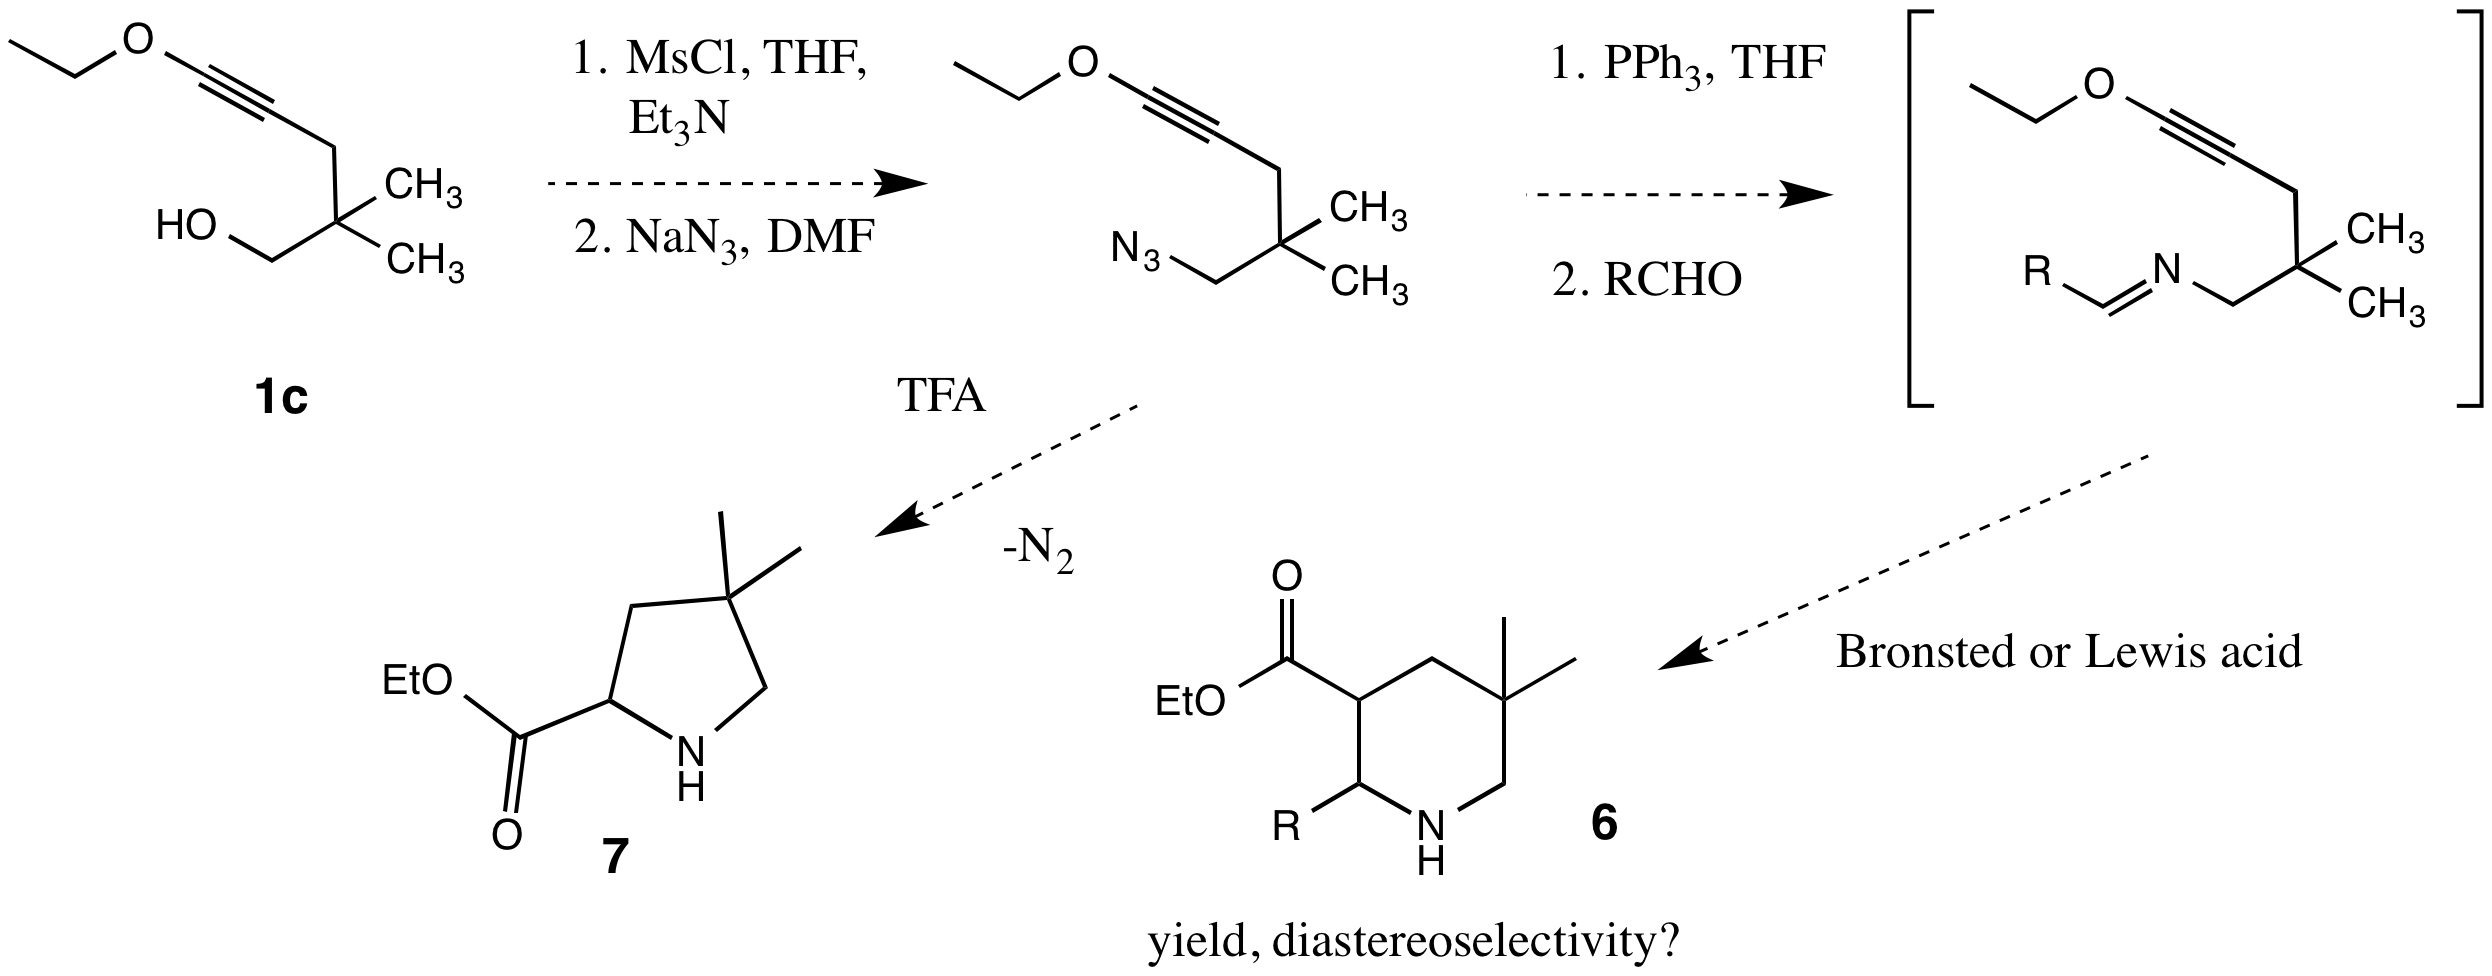 Report: Intramolecular Cycloaddition Reactions of Electron